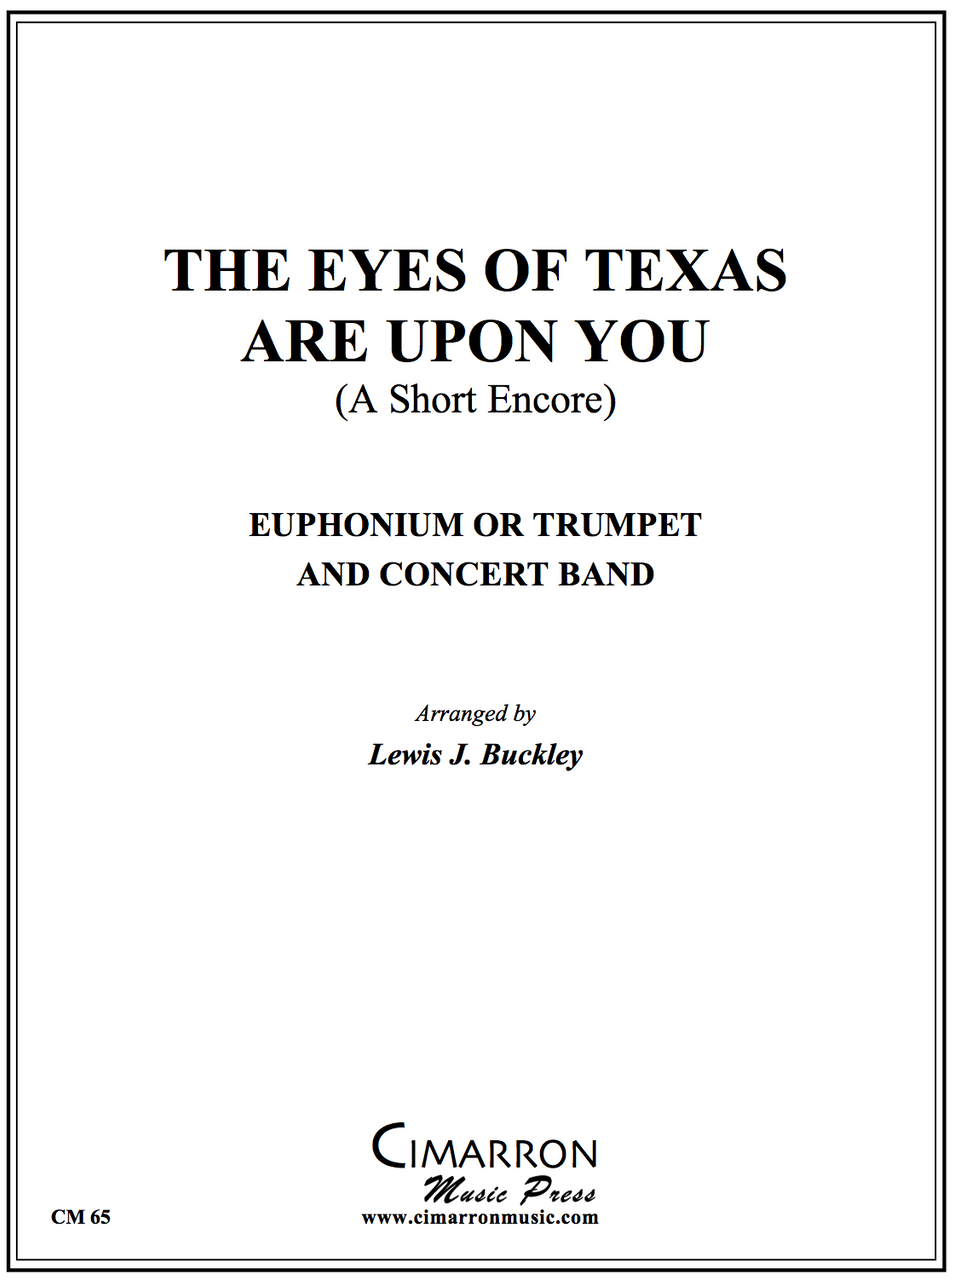 Trad - The Eyes of Texas Are Upon You - Euphonium Or Trumpet And Concert Band